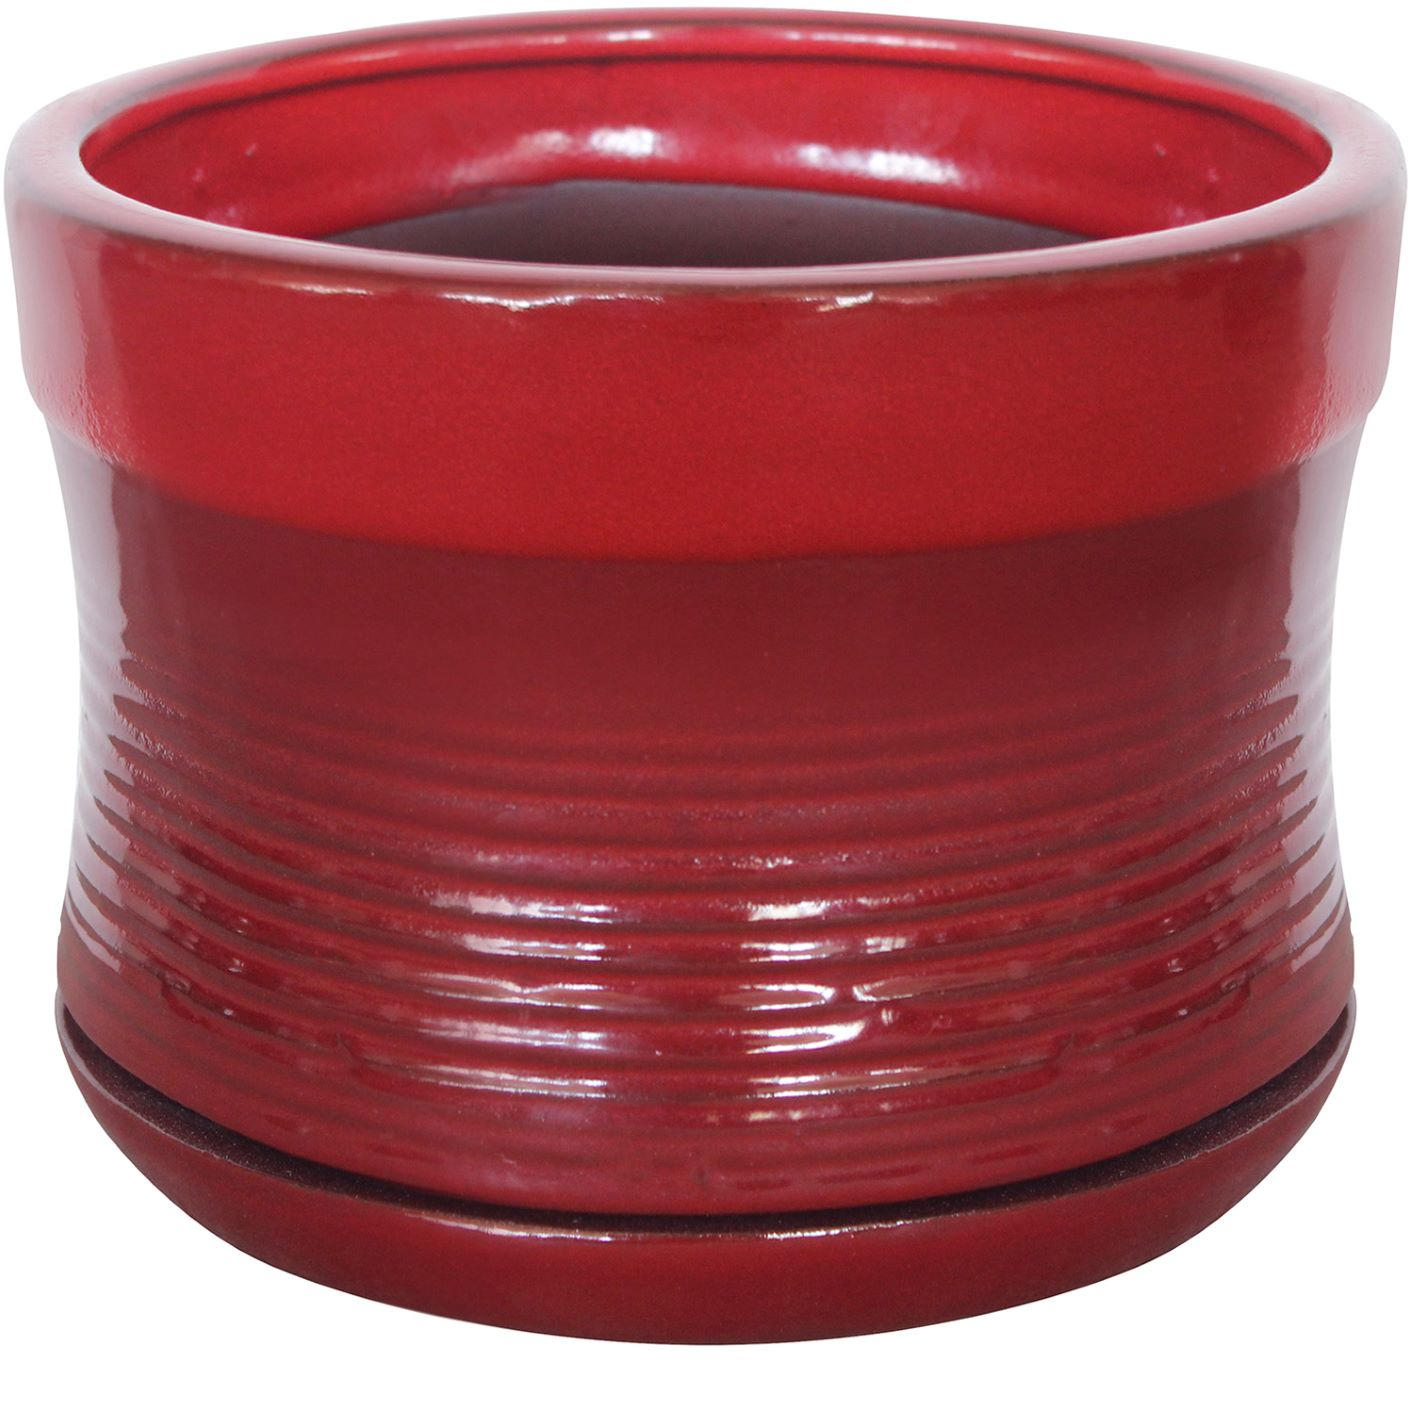 7.5 inch Red Pot